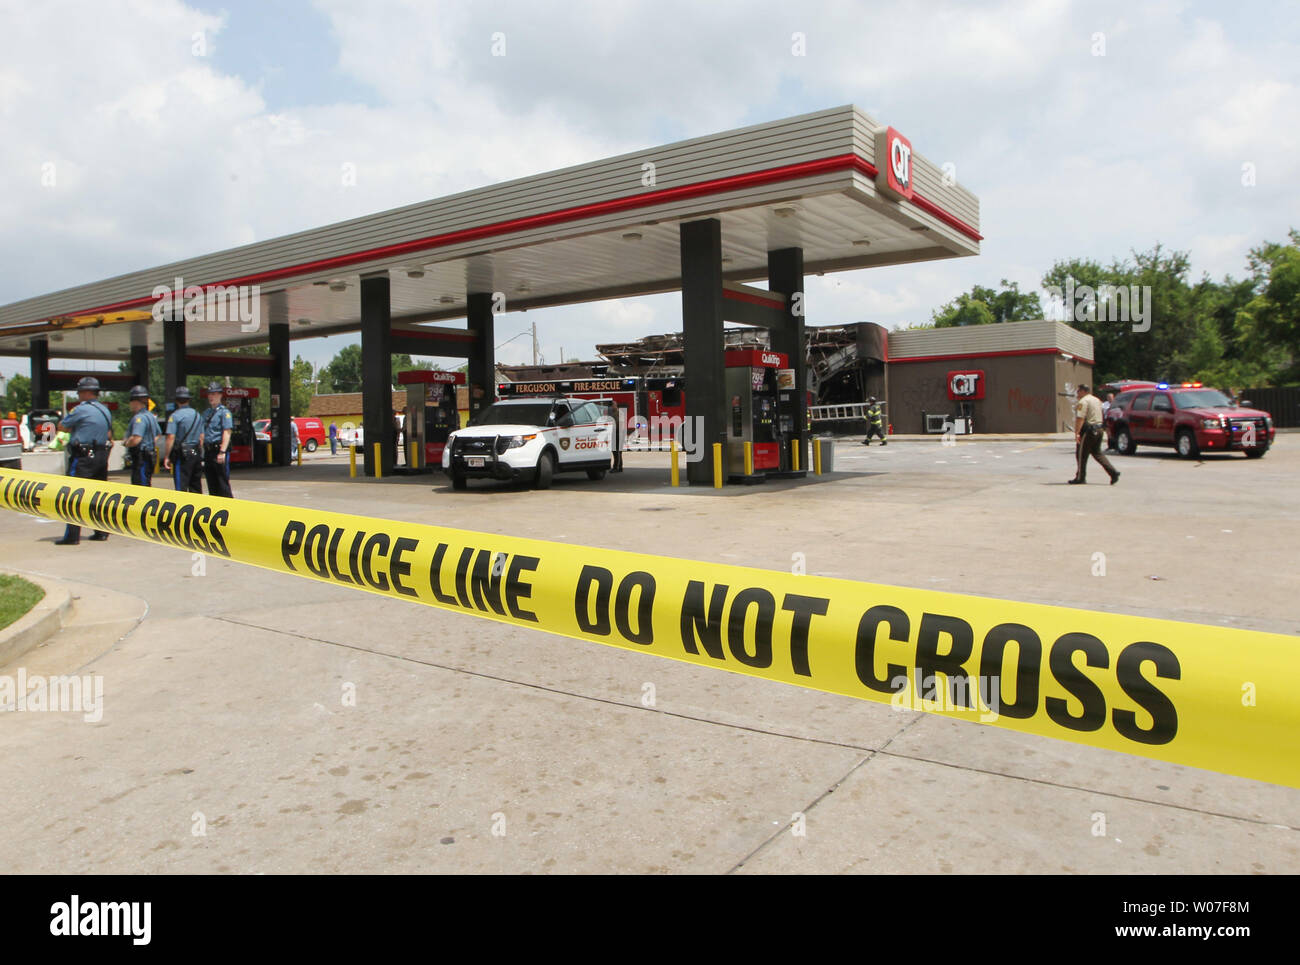 Firefighters and police remain at the scene of the burnt out QuikTrip Gas station following a night of looting, rioting and arsons in Ferguson, Missouri on August 11, 2014. People are upset because of the Ferguson Police shooting and death of an unarmed black teenager Michael Brown on August 9, 2014. In all about 20 businesses sustained damage after a candlelight vigil turned violent.   UPI/Bill Greenblatt Stock Photo